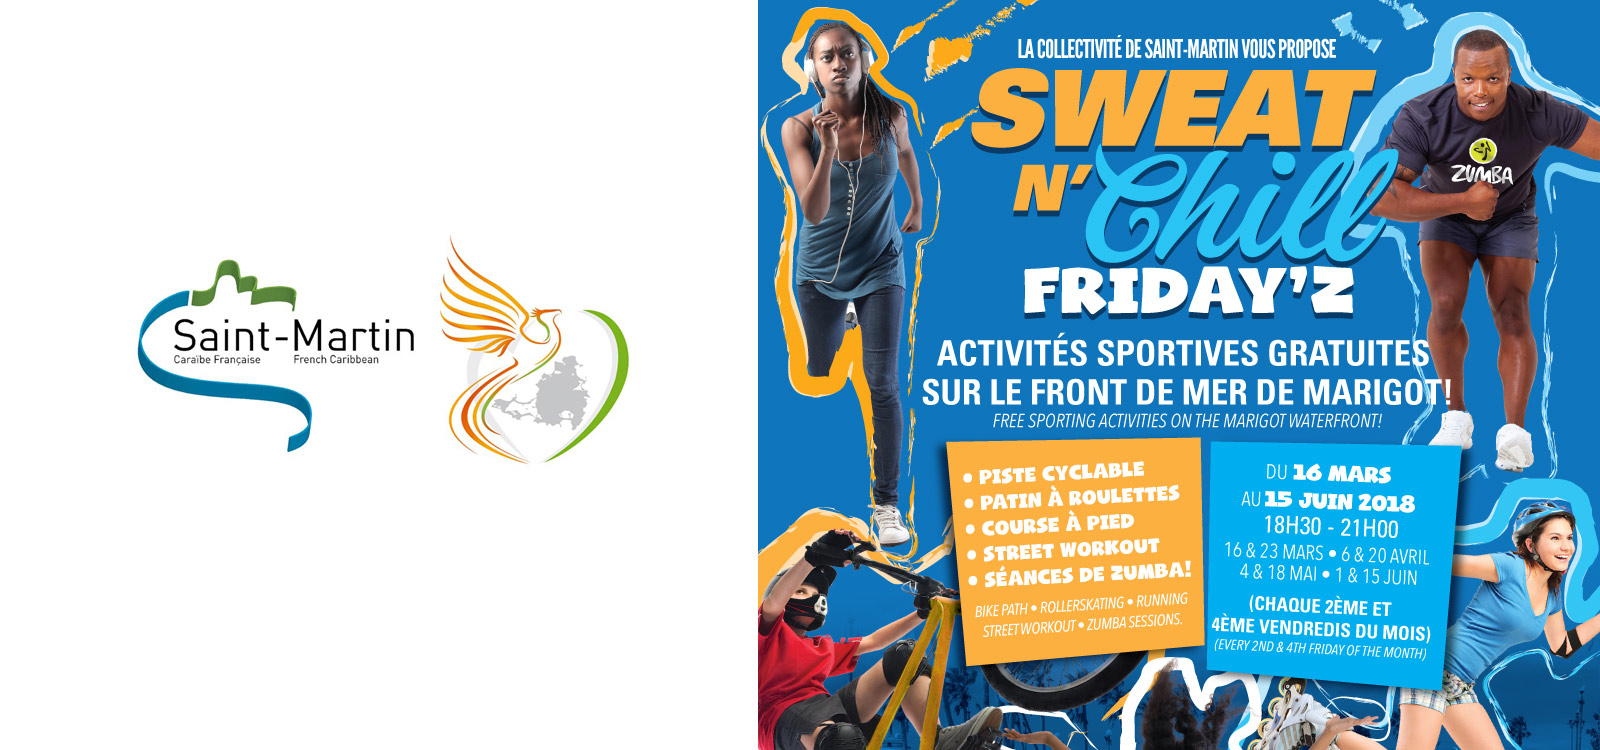 Launch of the Sweat N 'Chill Friday'z event